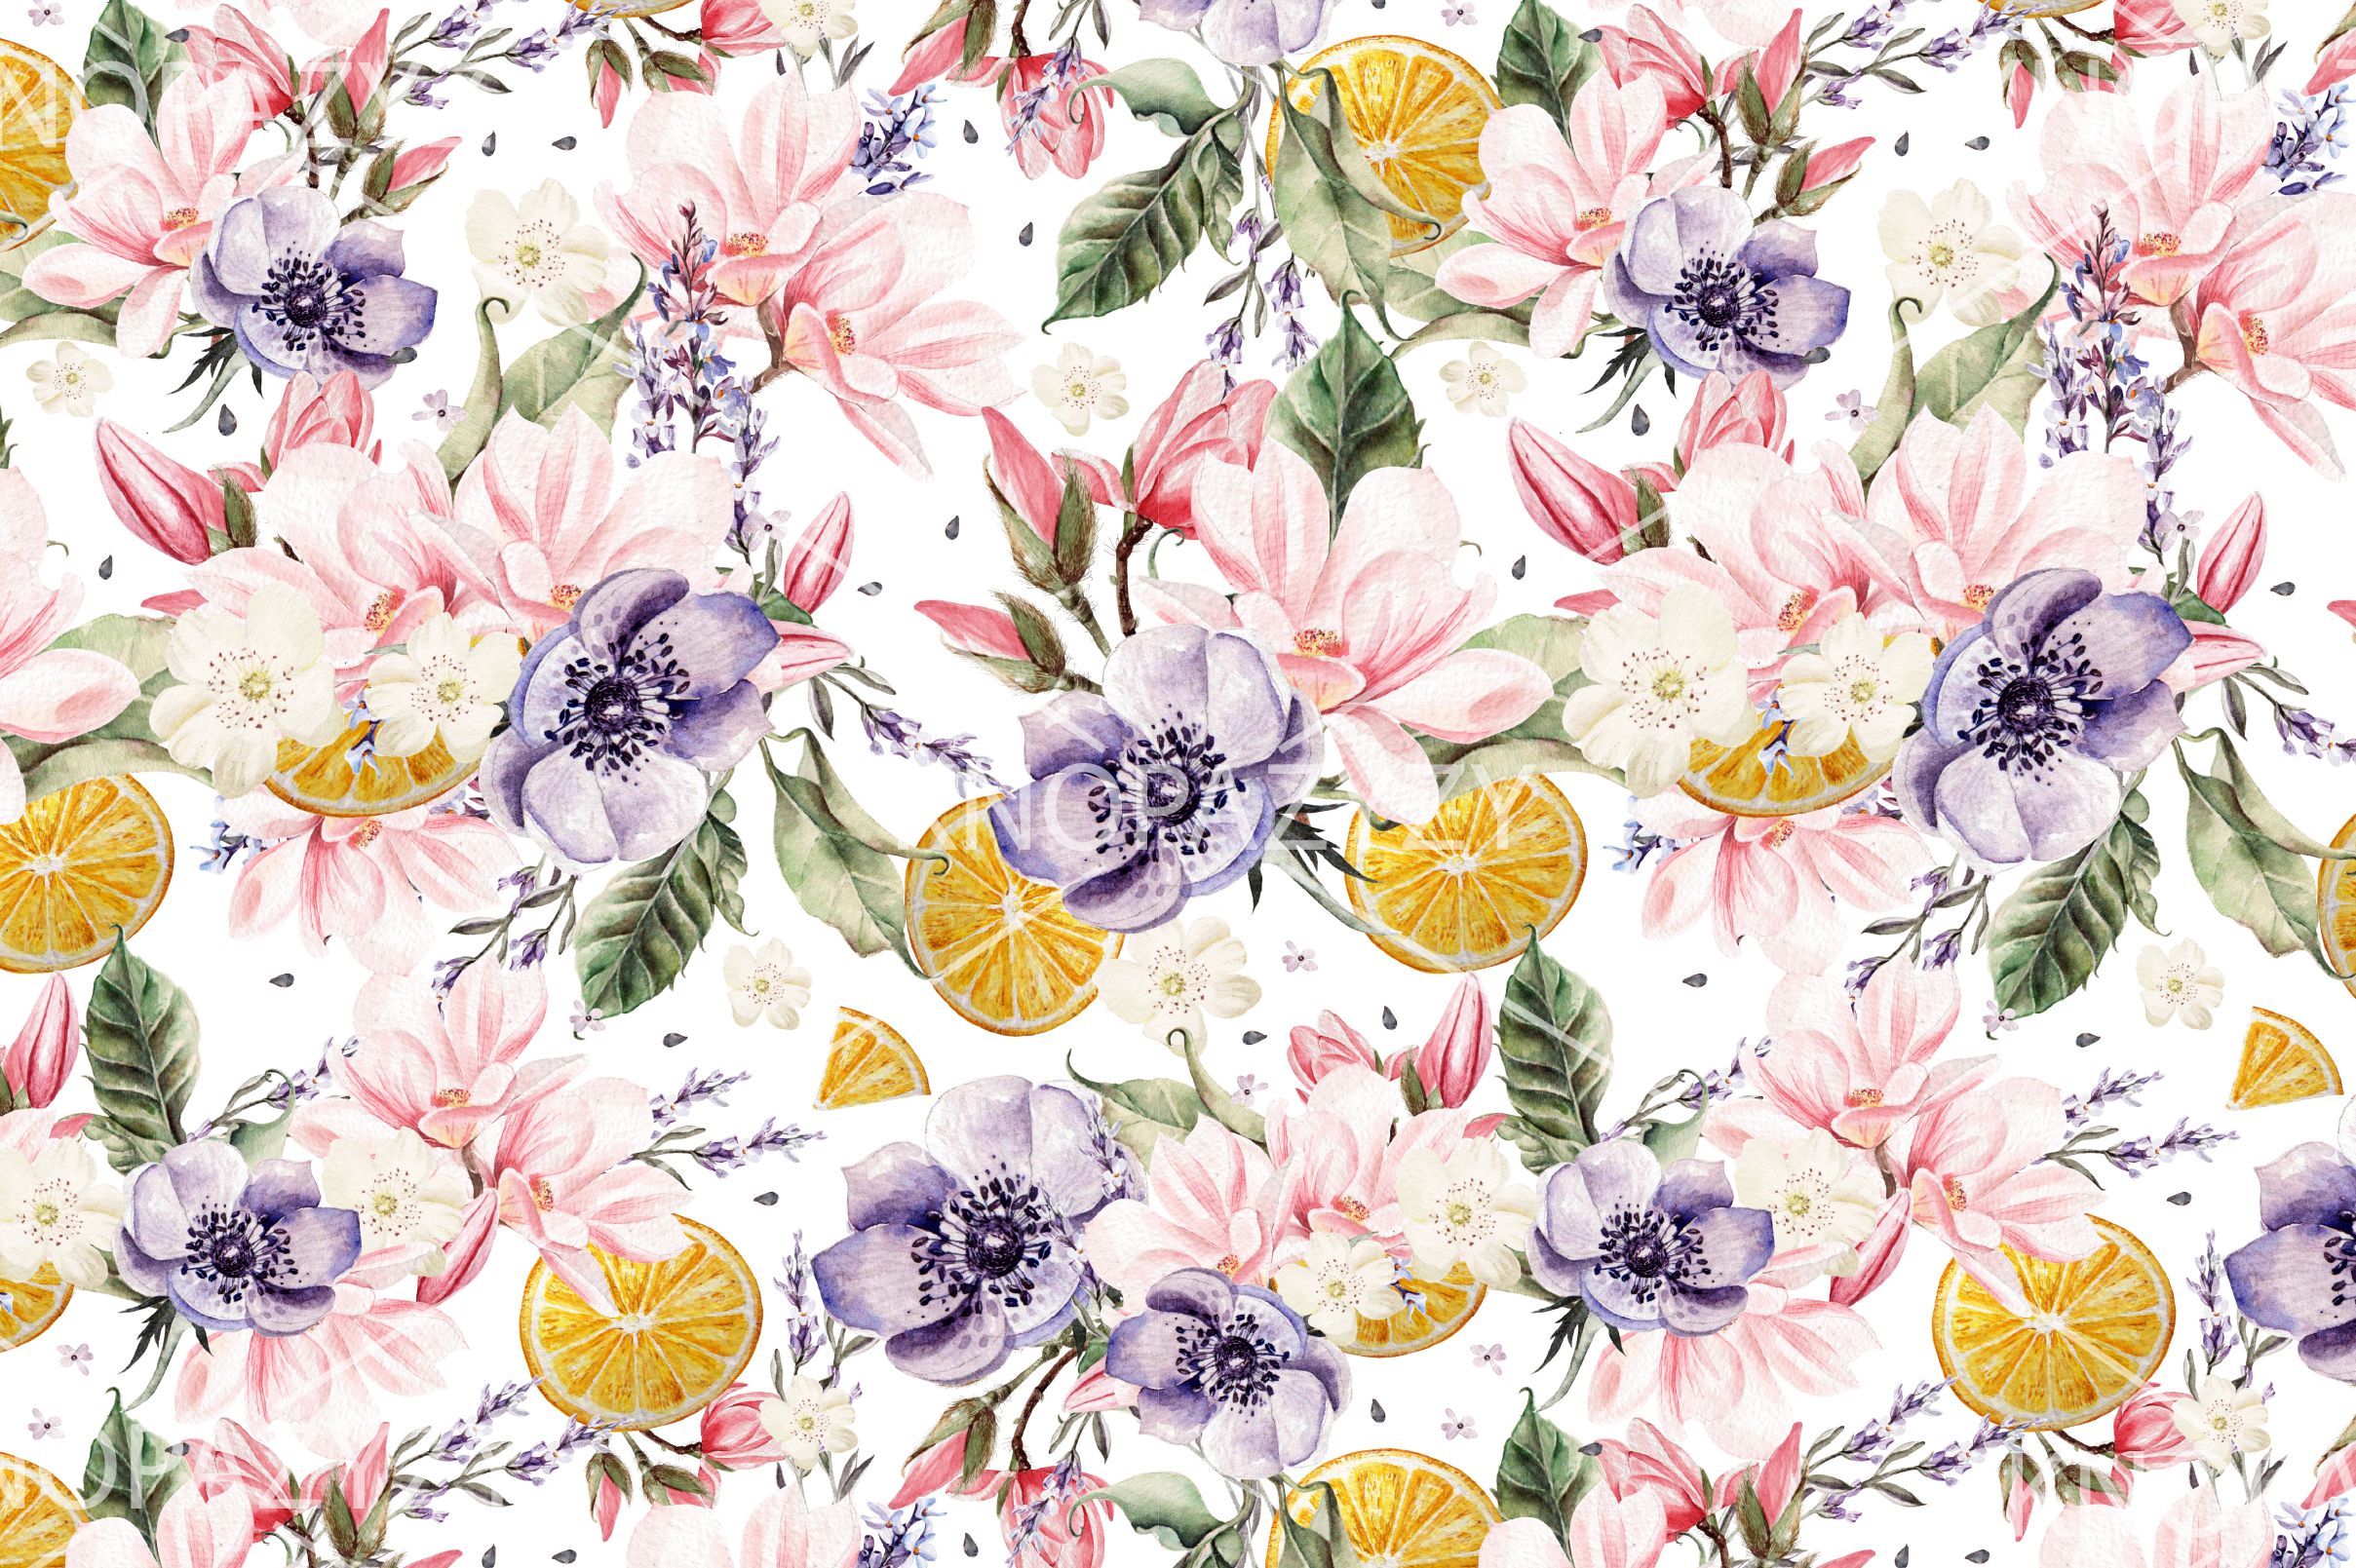 6 Hand Drawn Watercolor PATTERNS example image 3